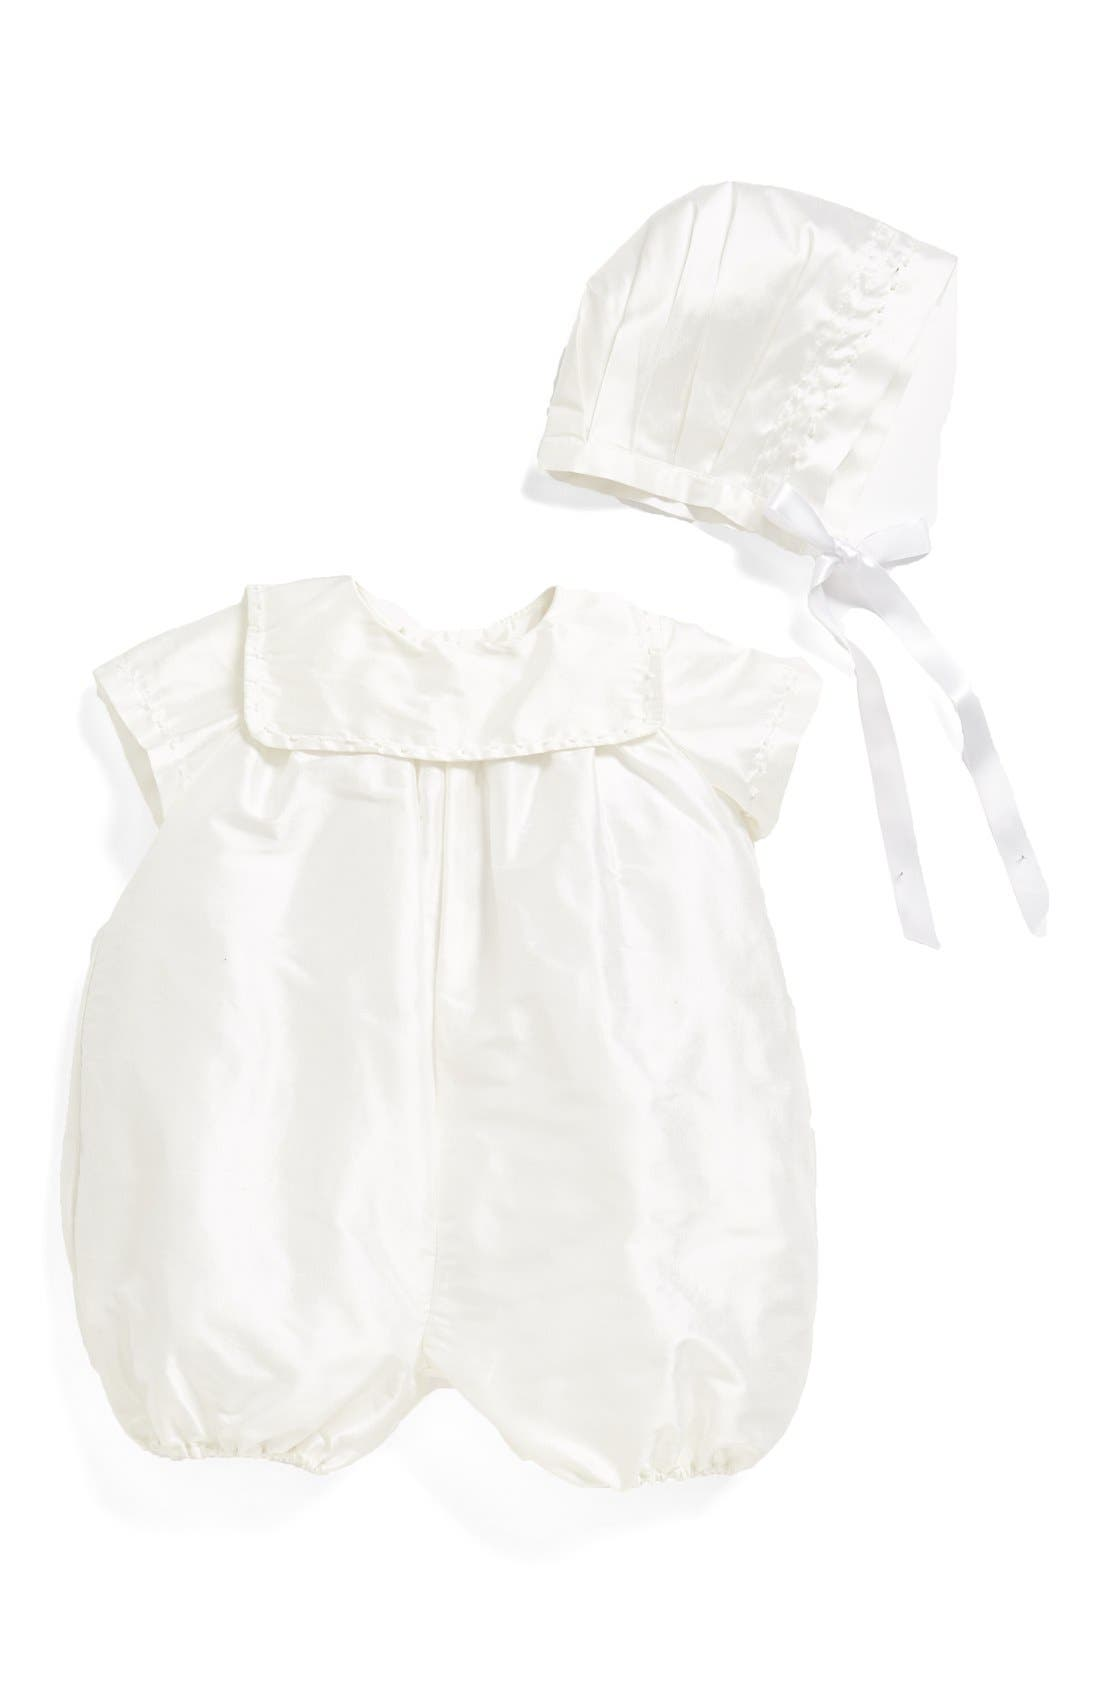 ISABEL GARRETON 'Charming' Silk Romper & Bonnet, Main, color, 105